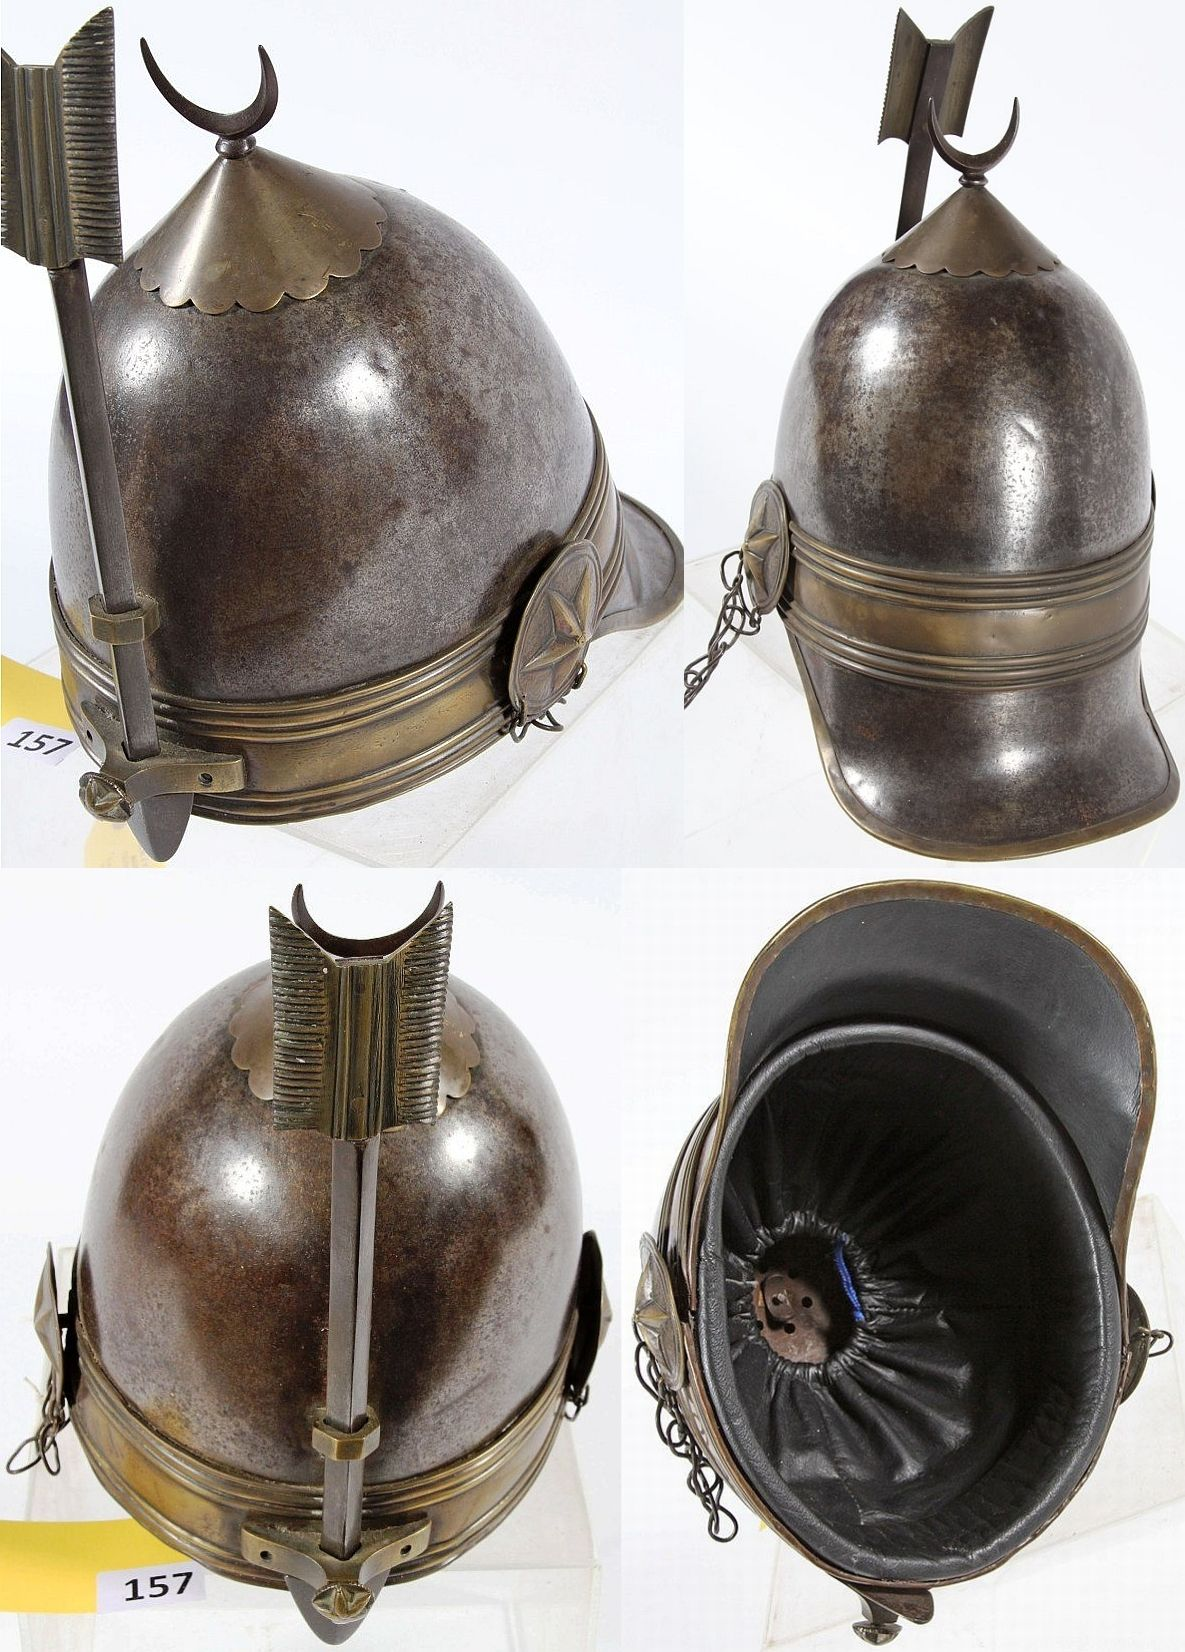 Ottoman Military Helmet In The Style Of The Old Chichak Helmet